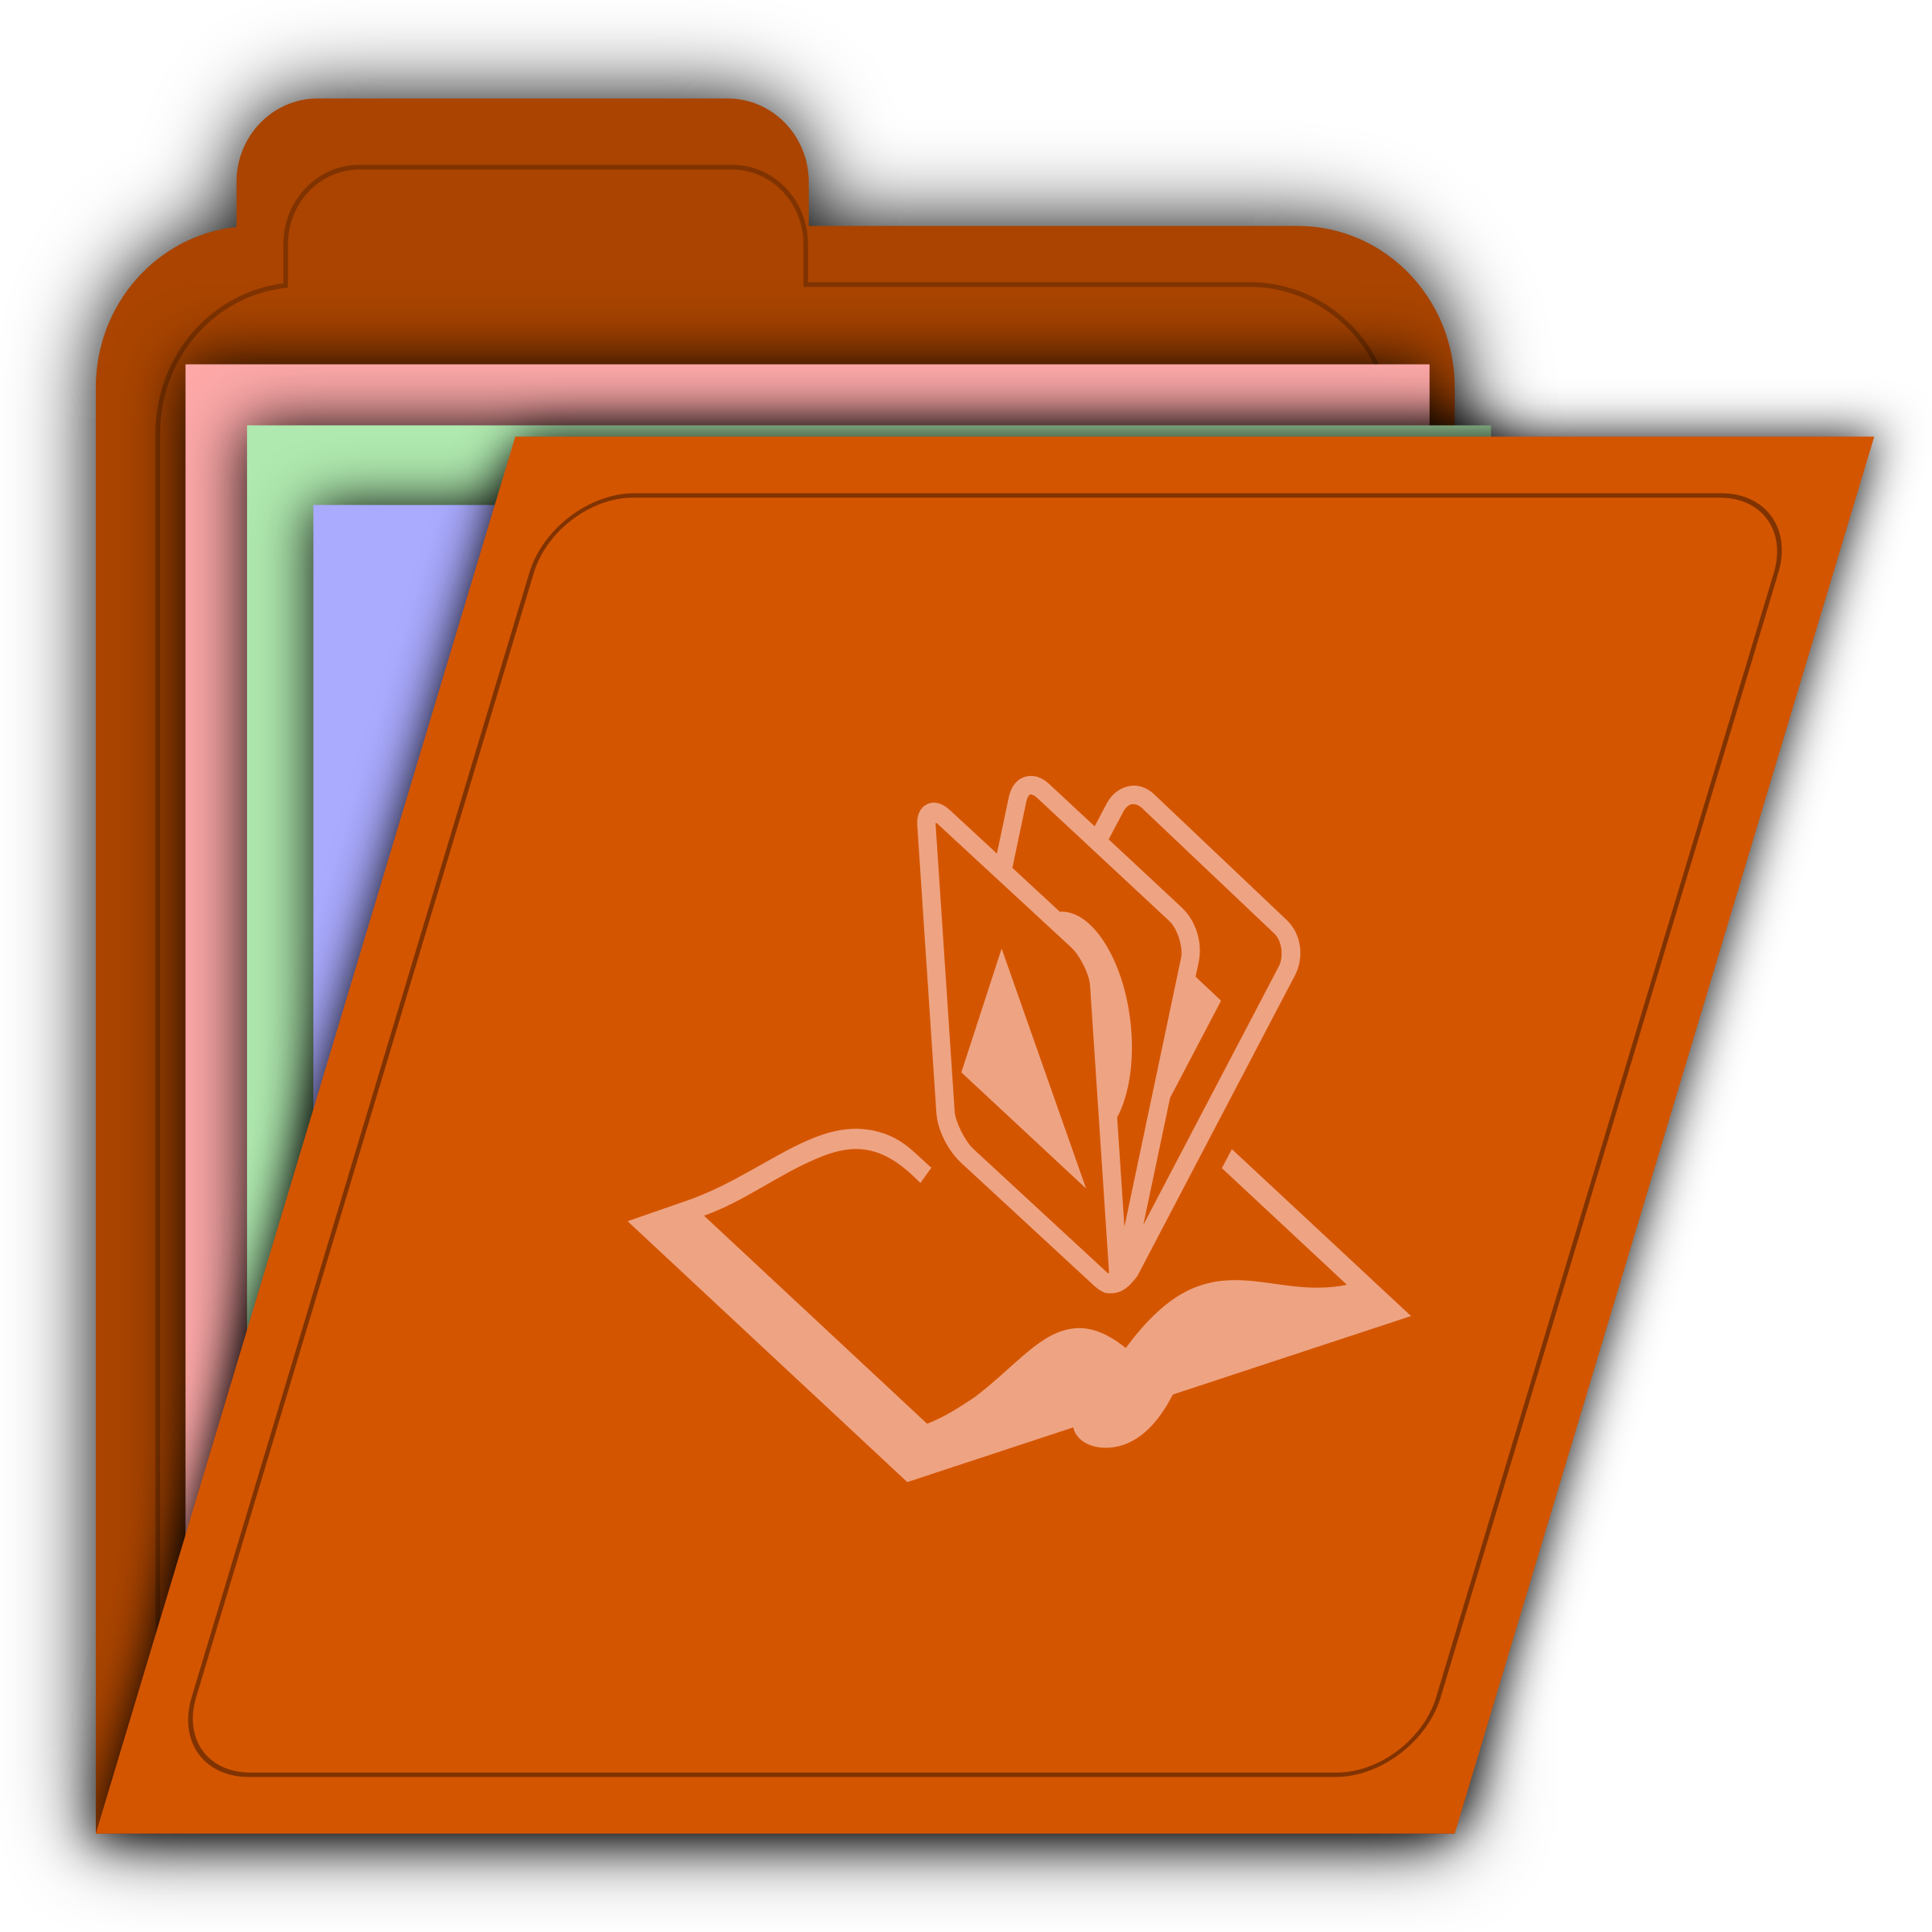 OCAL favorite folder icon by gsagri04